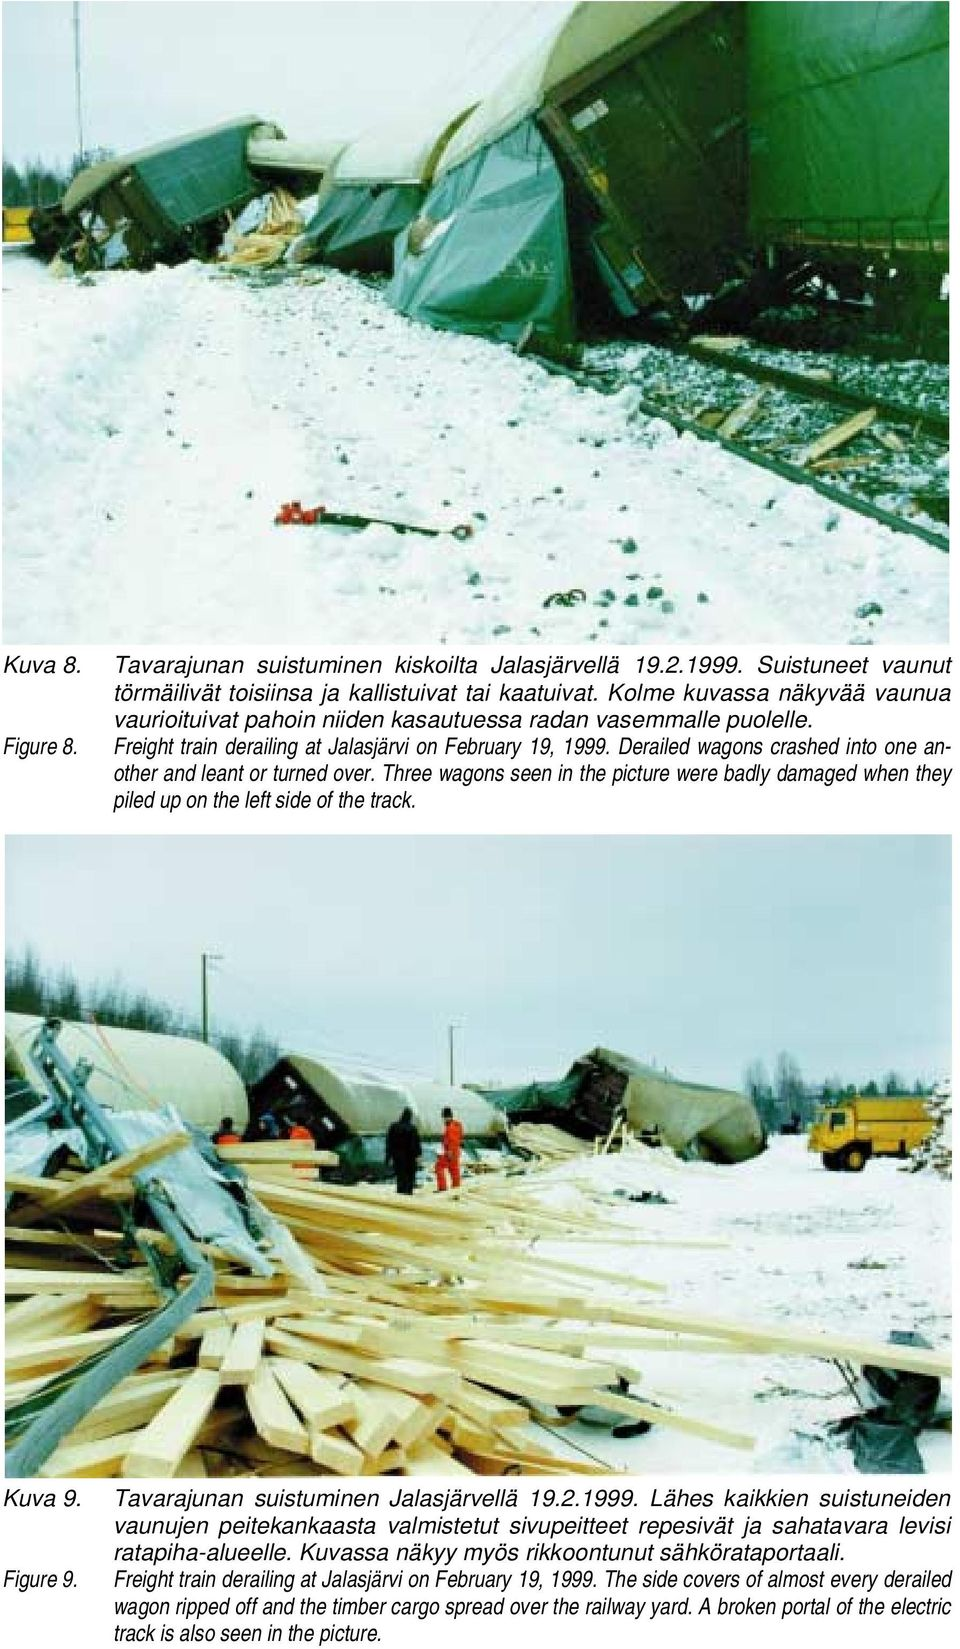 Three wagons seen in the picture were badly damaged when they piled up on the left side of the track. Kuva 9. Figure 9. Tavarajunan suistuminen Jalasjärvellä 19.2.1999.